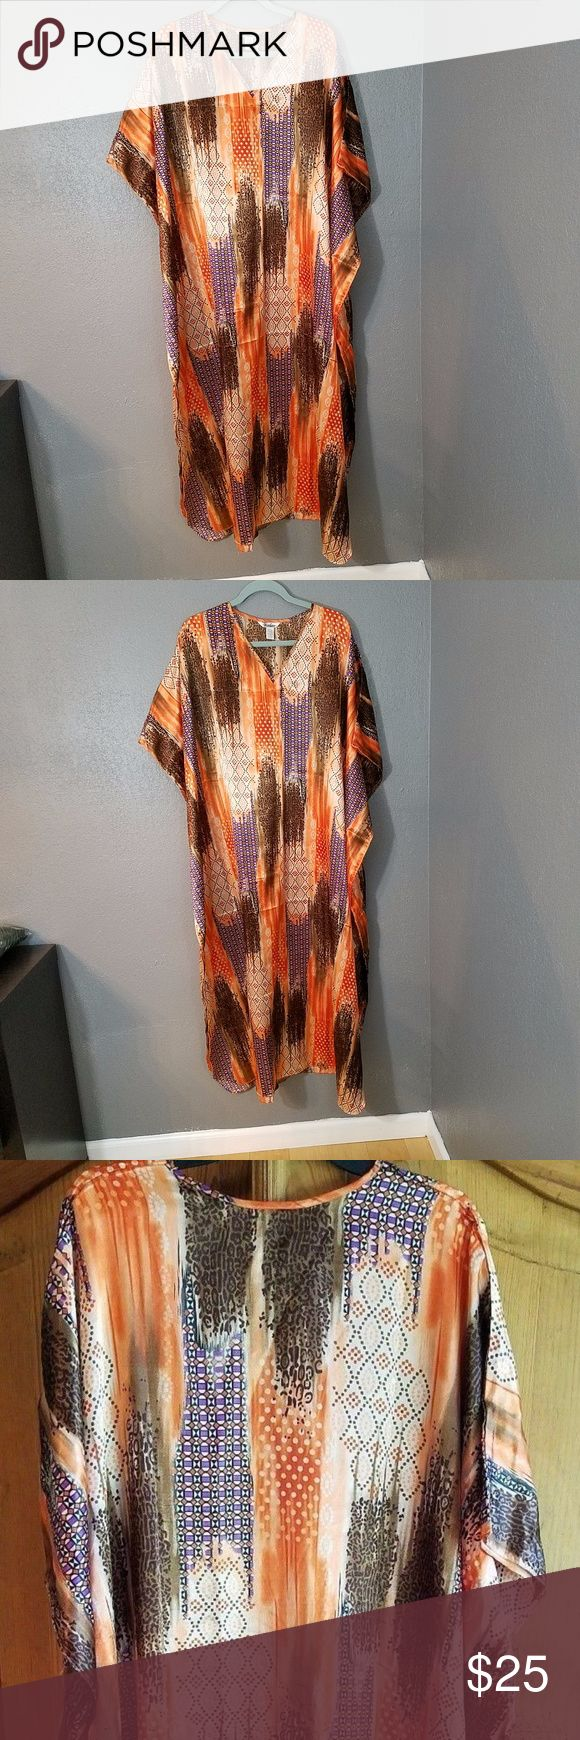 "Winlar Caftan Animal Print OS WINLAR CAFTAN Muumuu dress. It is orange and browns. Has several different patterns, please take a look at the pictures.  Some animal print, dots, and more.  It is One size fits most. In gently used good condition. No rips or stains. This is one of three that I have listed. Please take a look at my store.  About 42"" shoulder to shoulder.  Neck to hem is about 52"".  There is a slit on both sides at the bottom of about 18"".   There is a seam down the side about…"